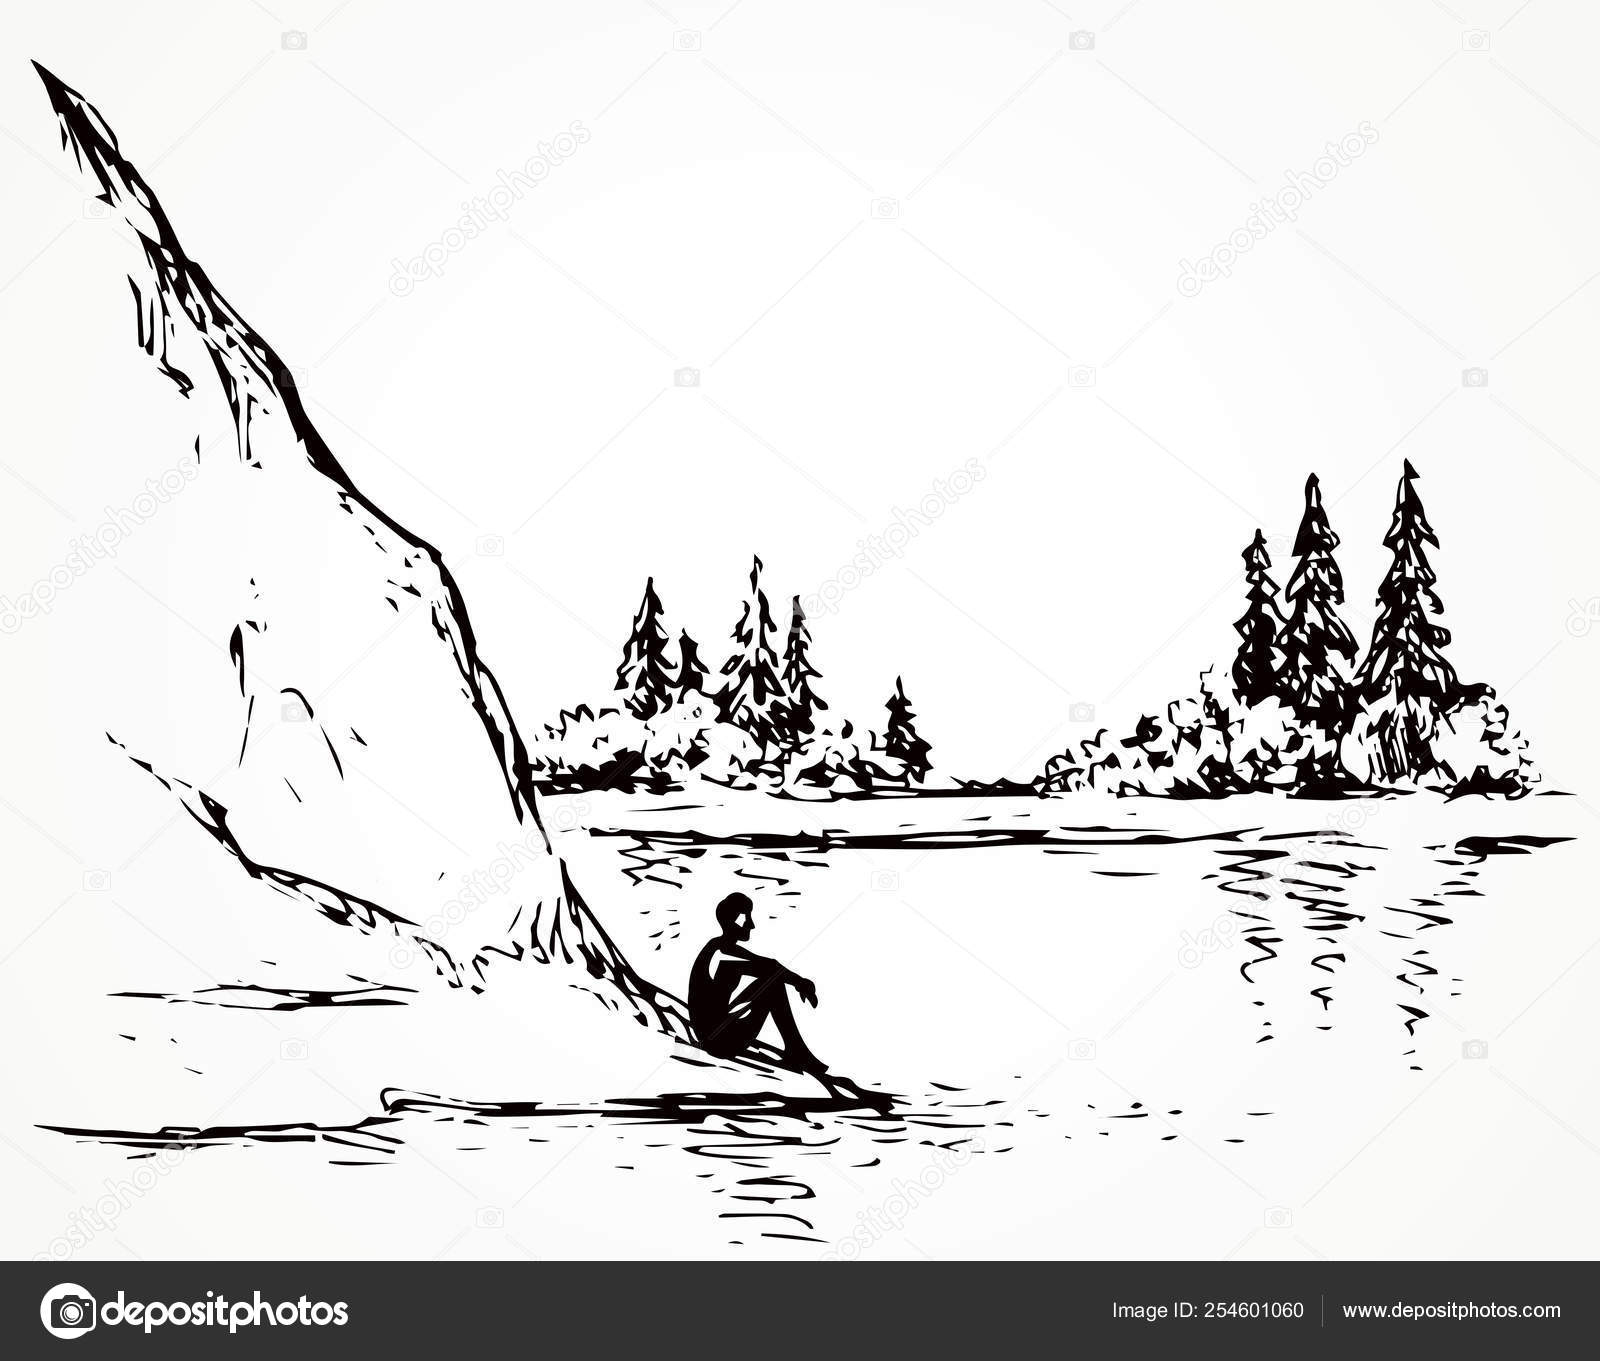 firs on hill above river vector drawing stock vector c marinka 254601060 firs on hill above river vector drawing stock vector c marinka 254601060